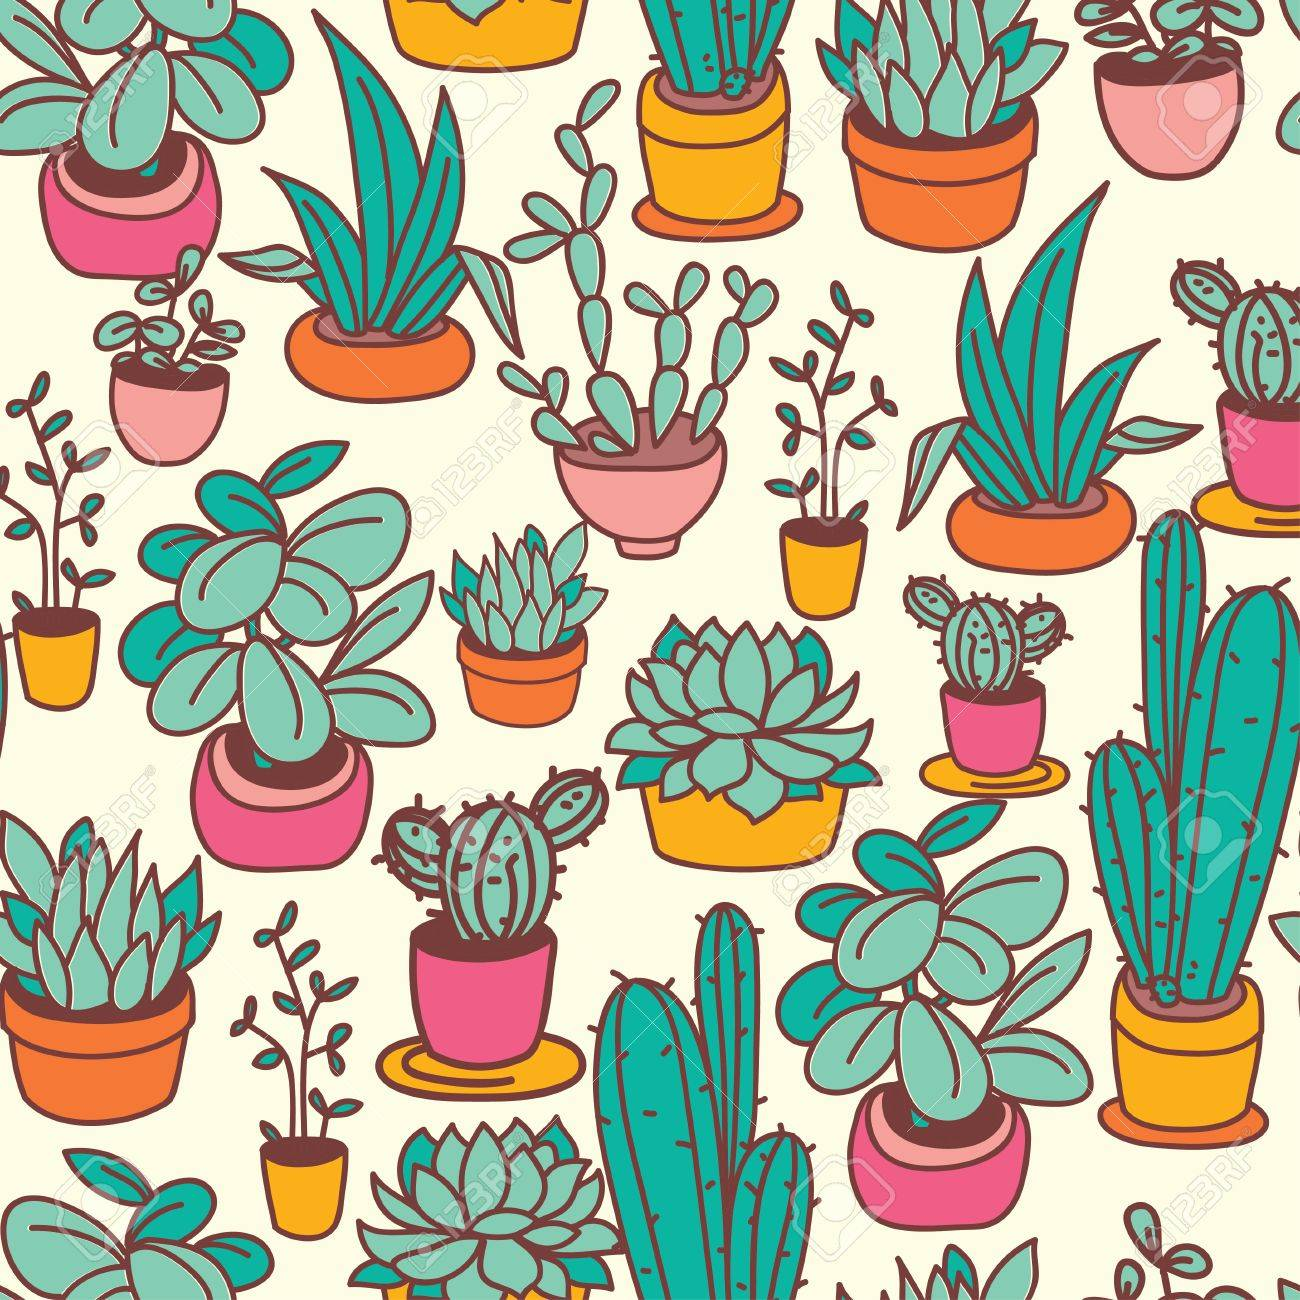 Seamless Pattern Of Cute Potted Plants Funny Cartoon Icons Royalty Free Cliparts Vectors And Stock Illustration Image 85654854